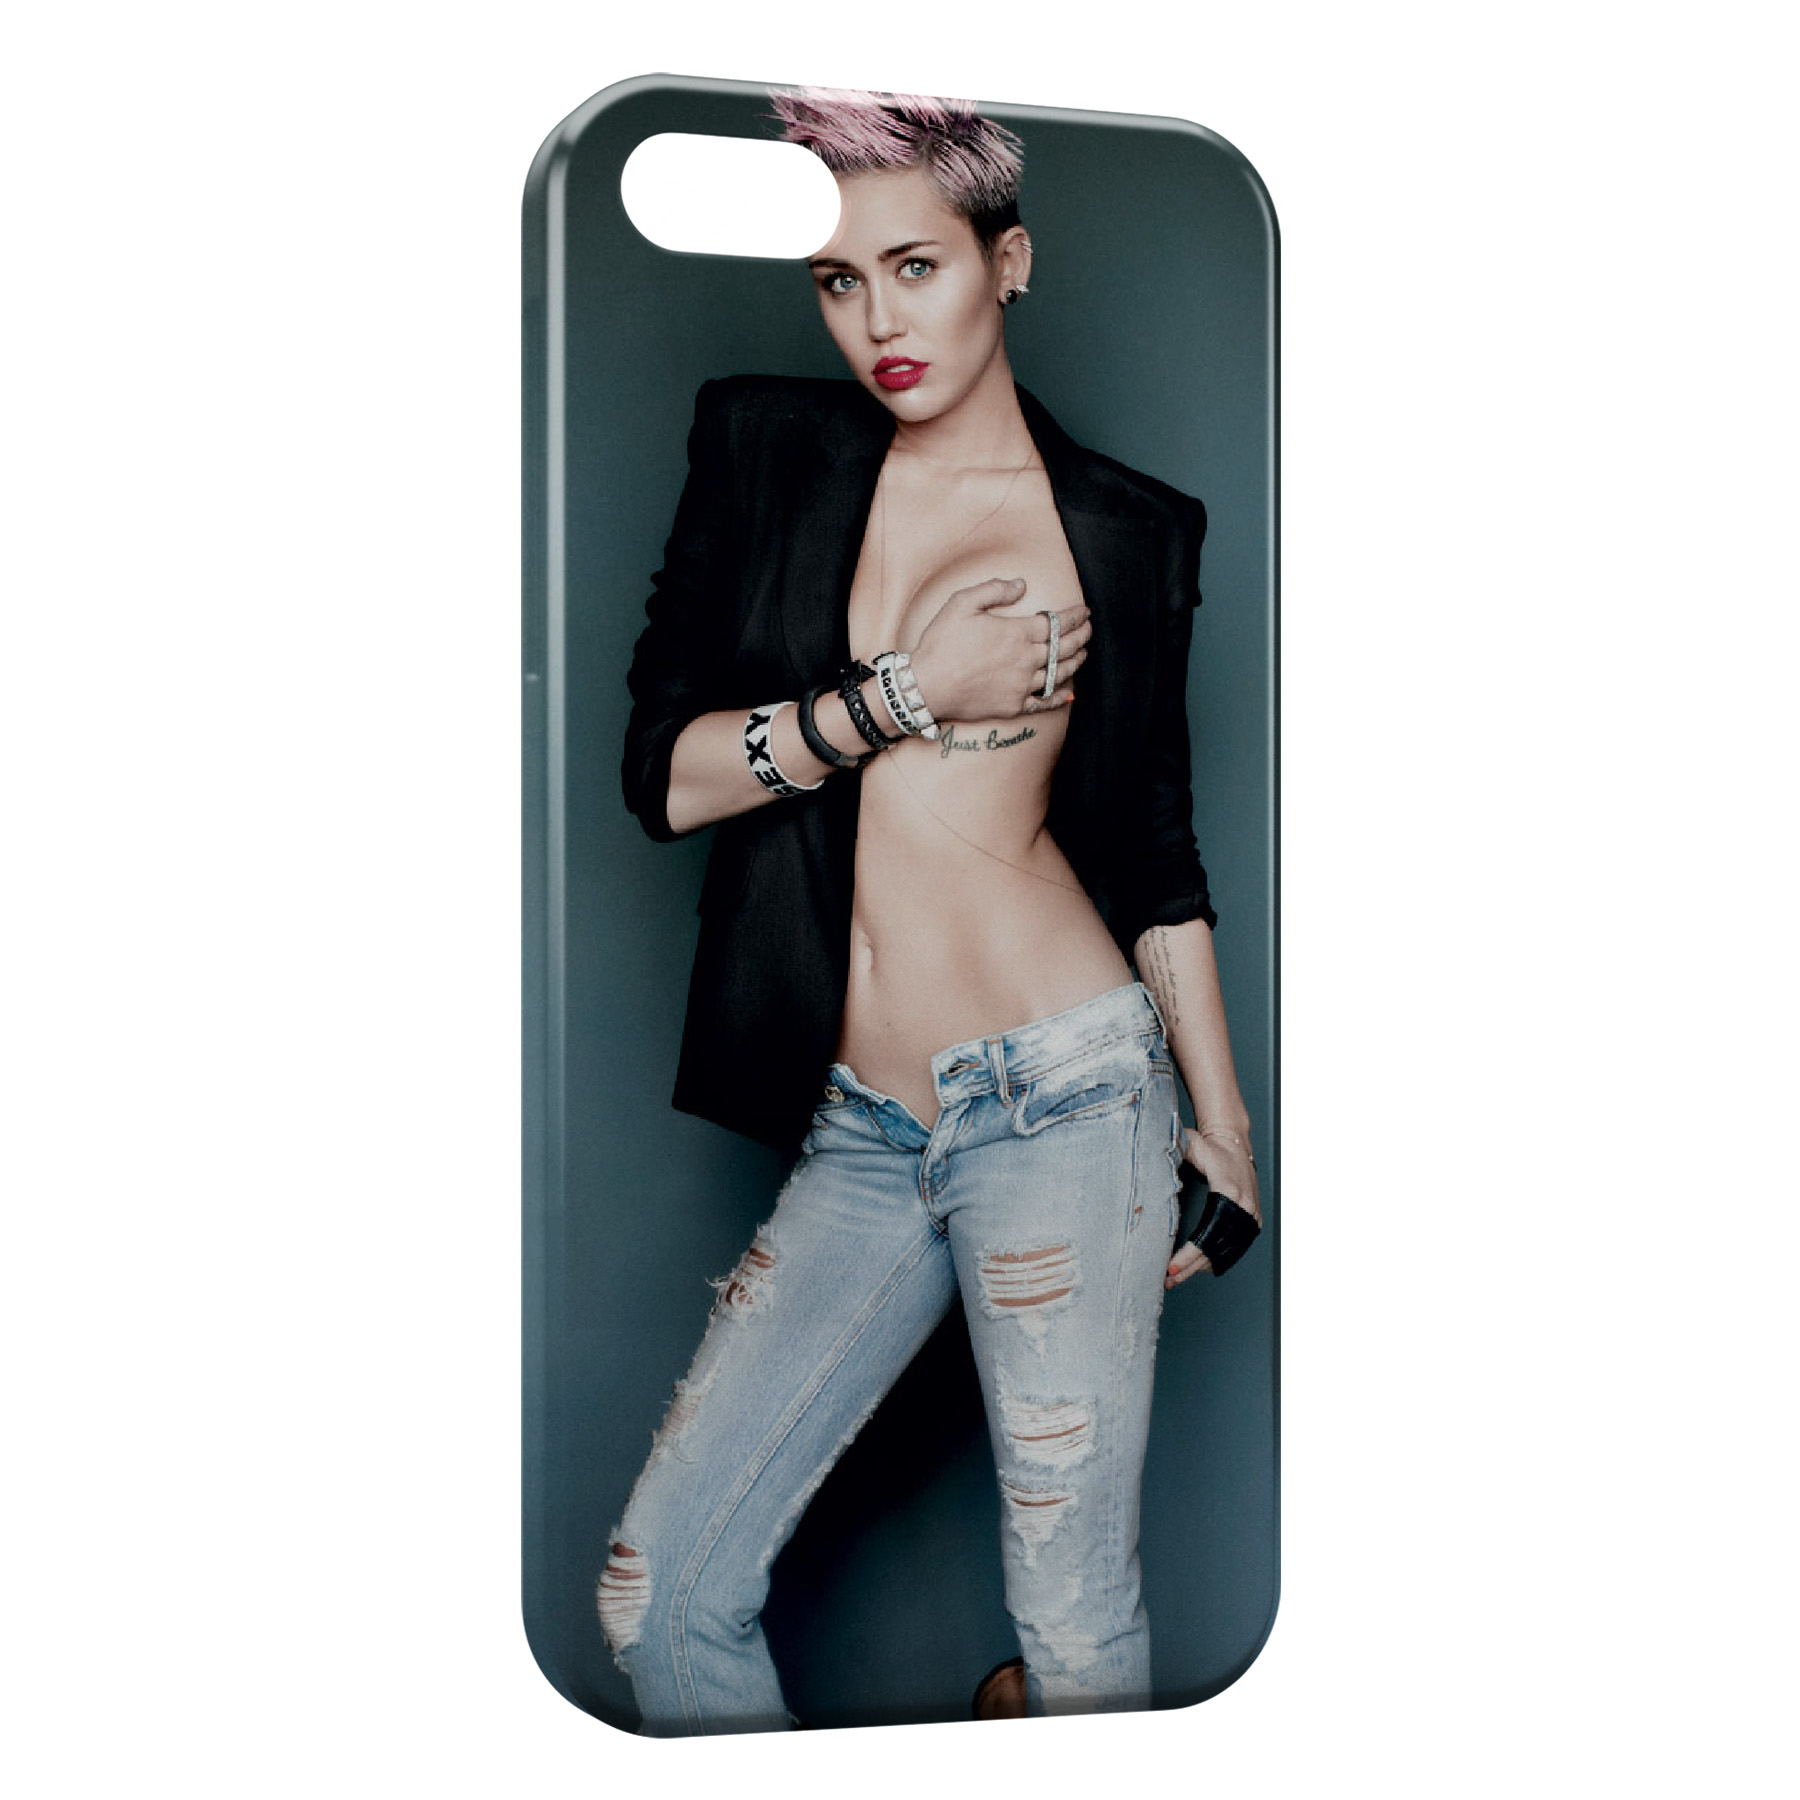 coque iphone 6 miley cyrus